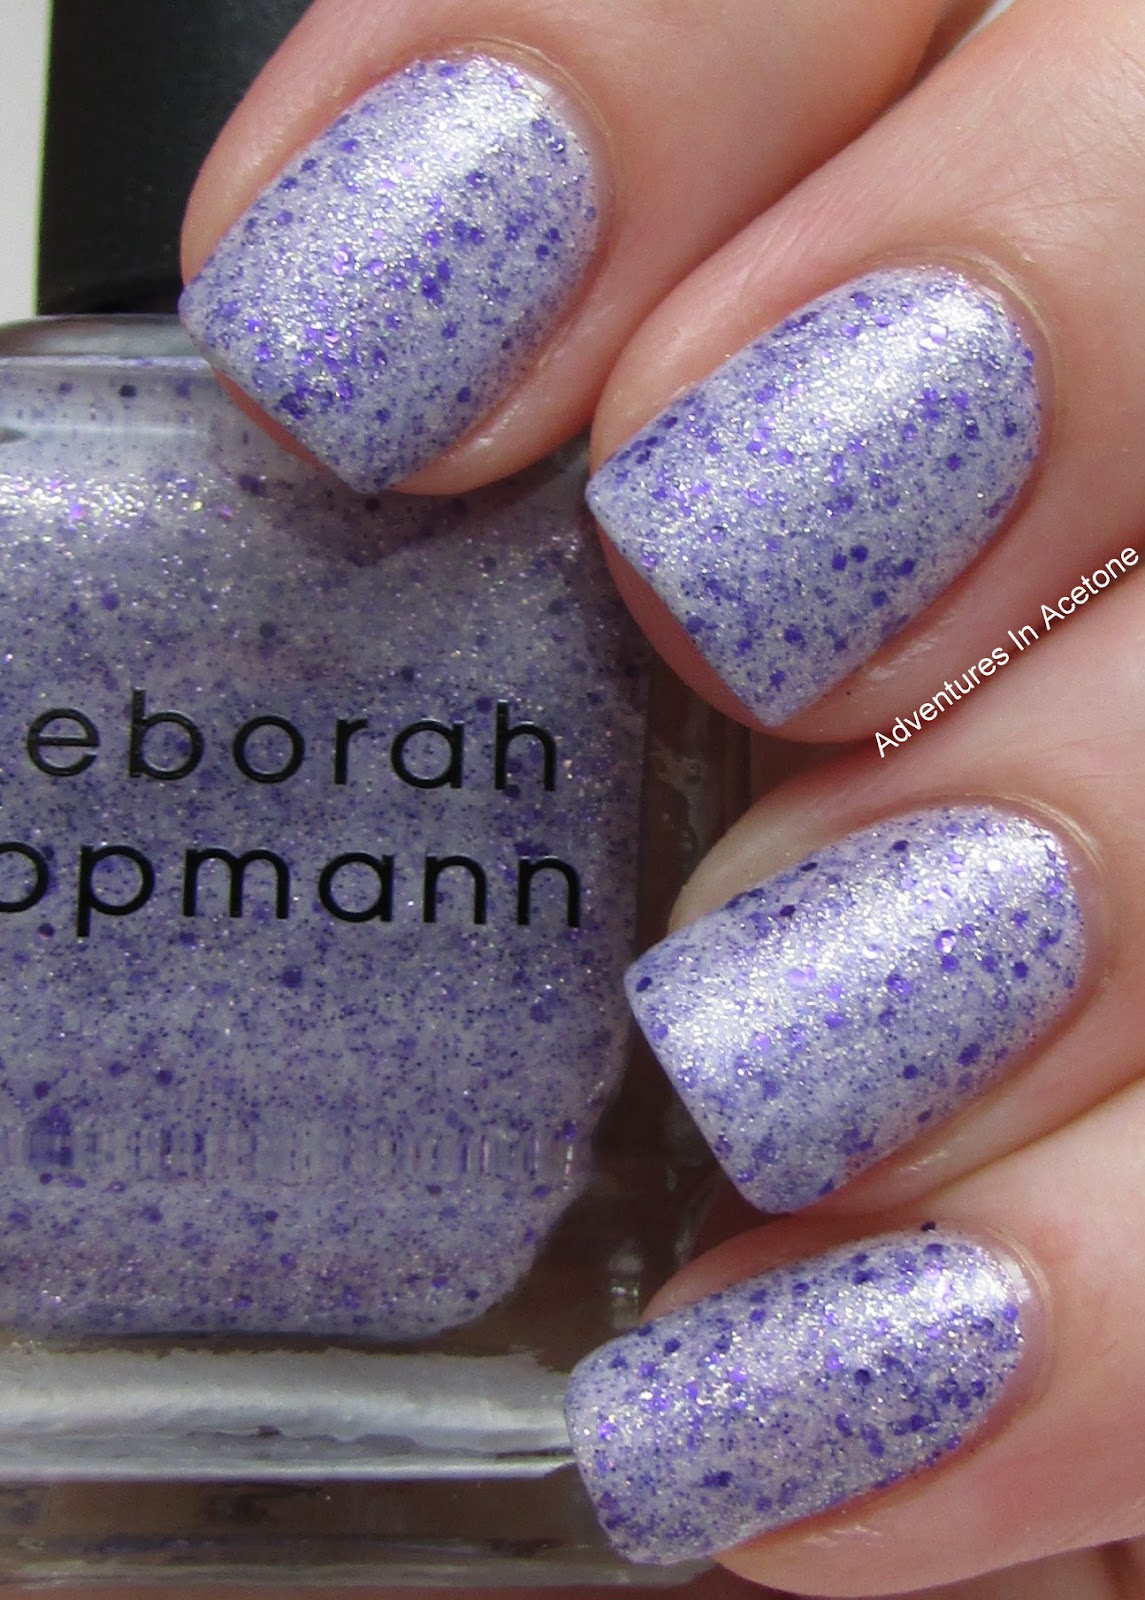 Deborah Lippmann Mermaids SWATCHES! - Adventures In Acetone